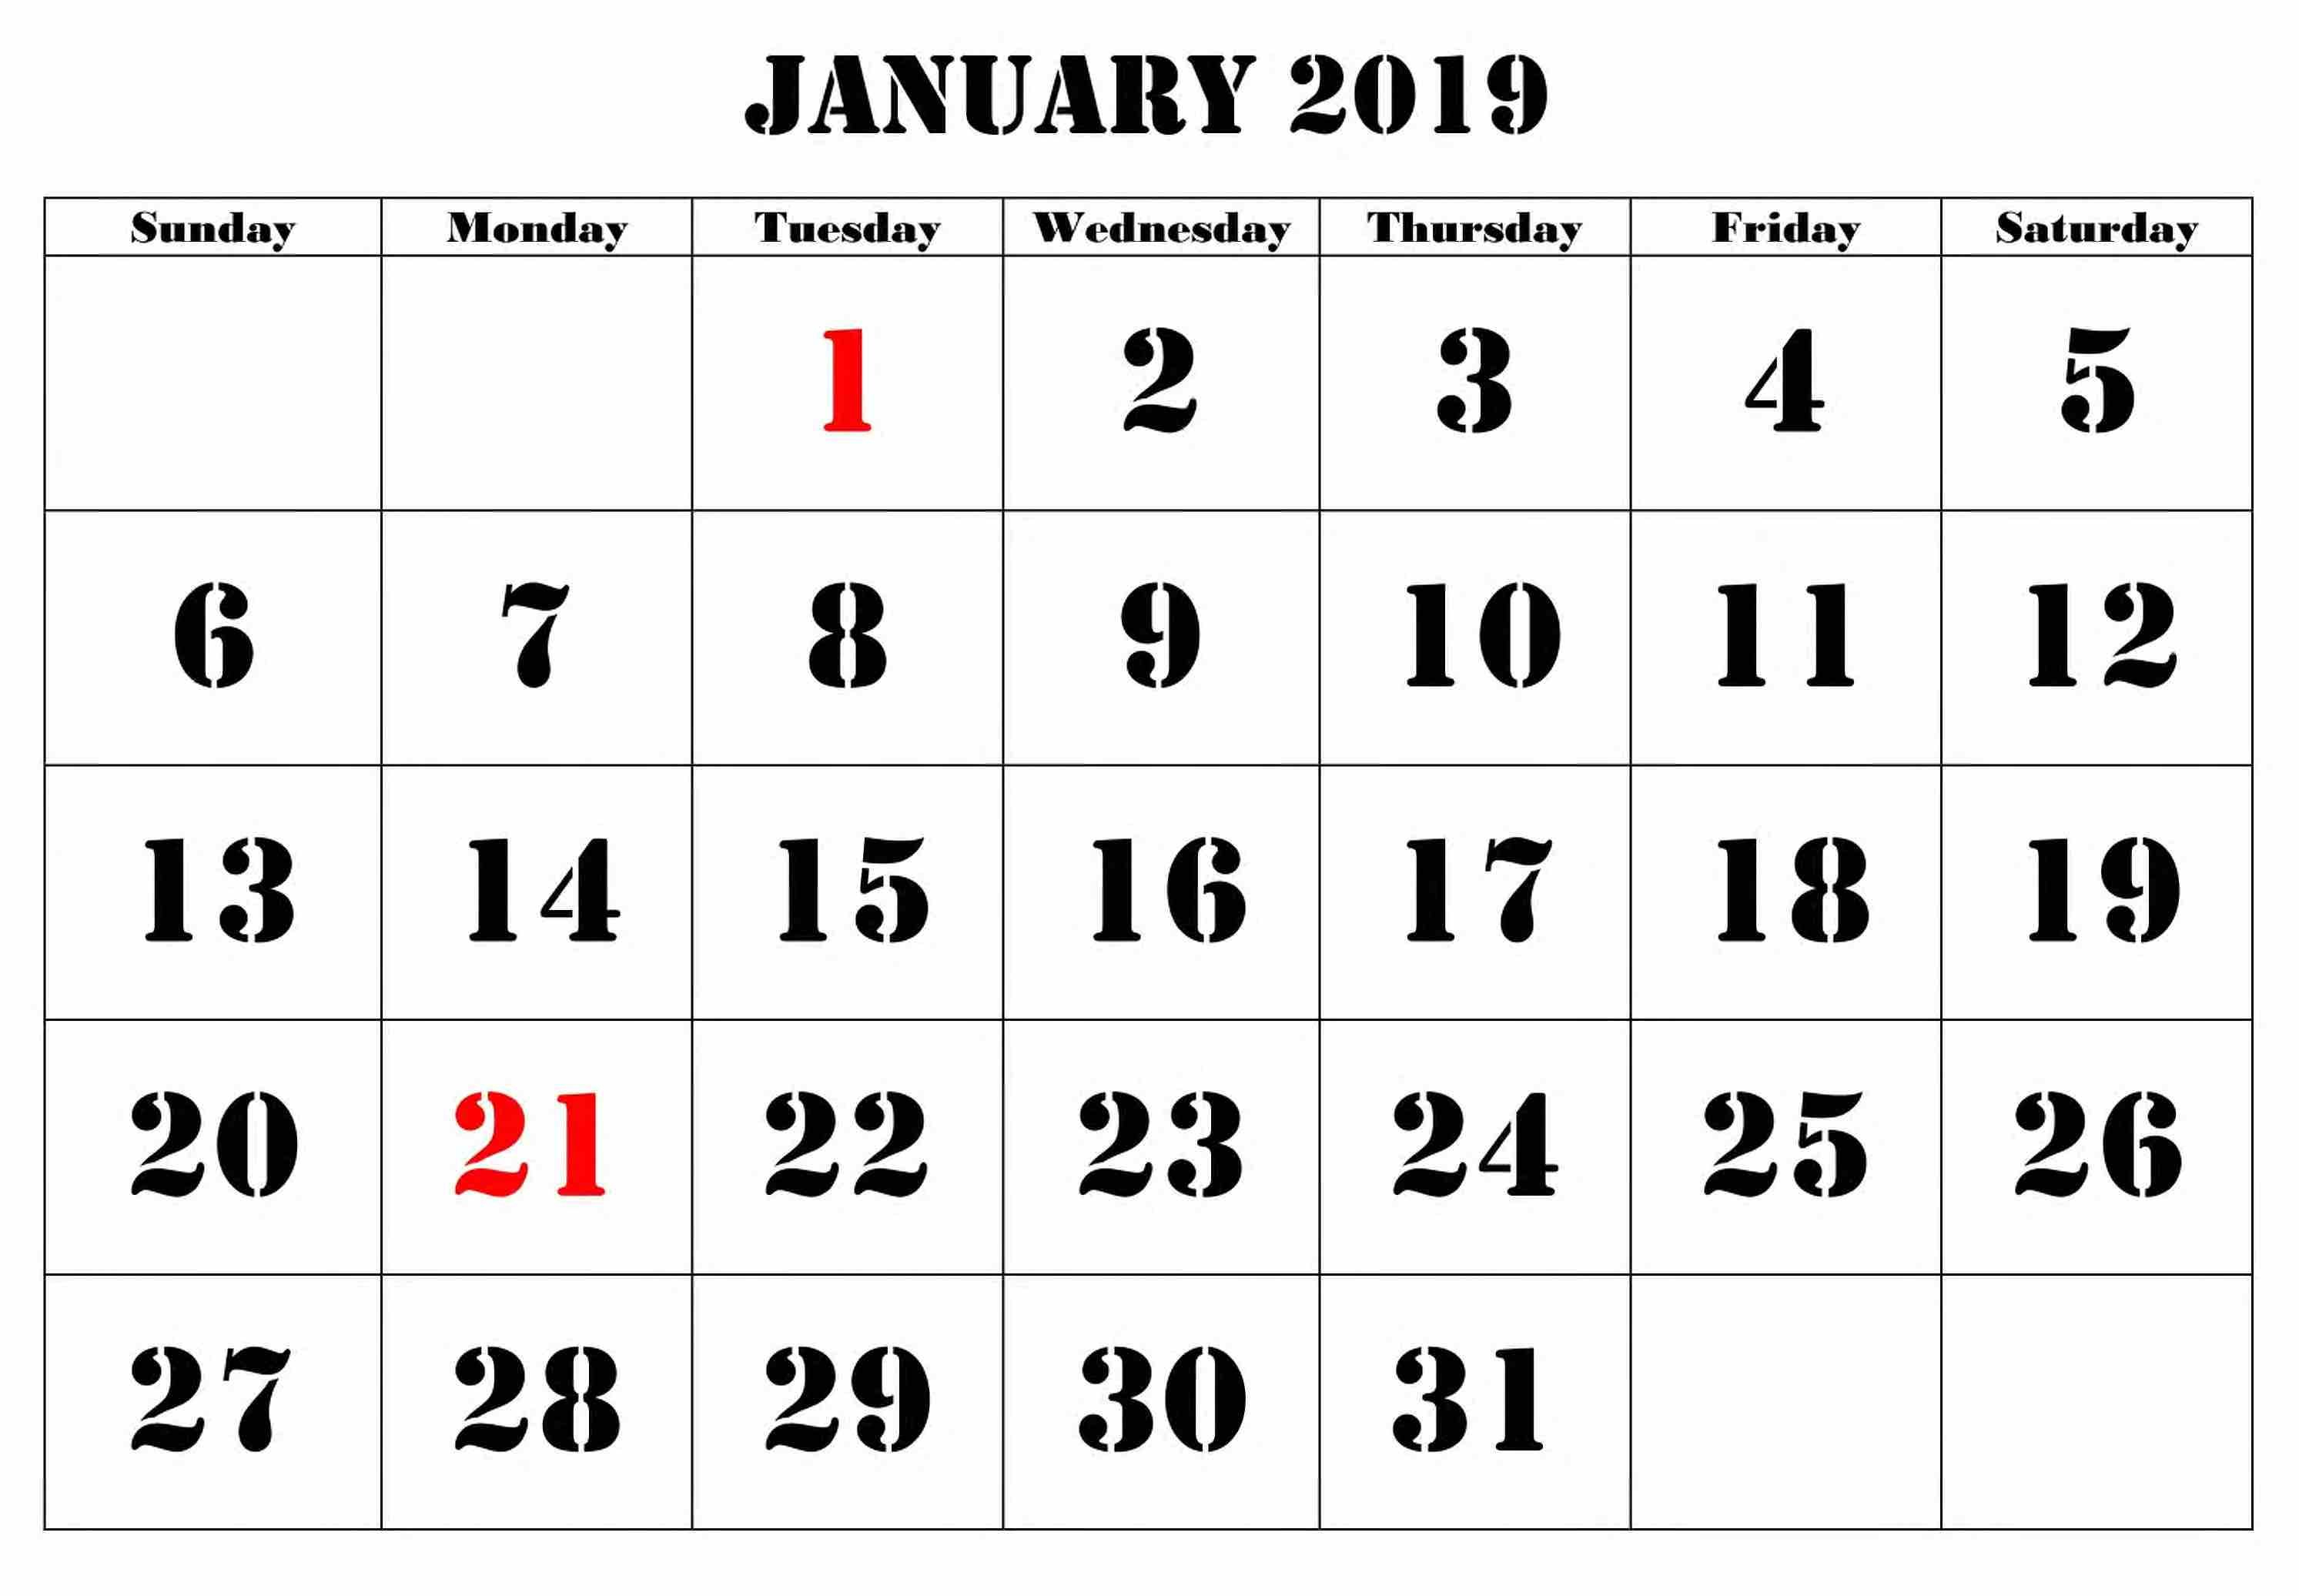 Calendar January 2019 Large Number #januarycalendar in Free Large Number Printable Calendars